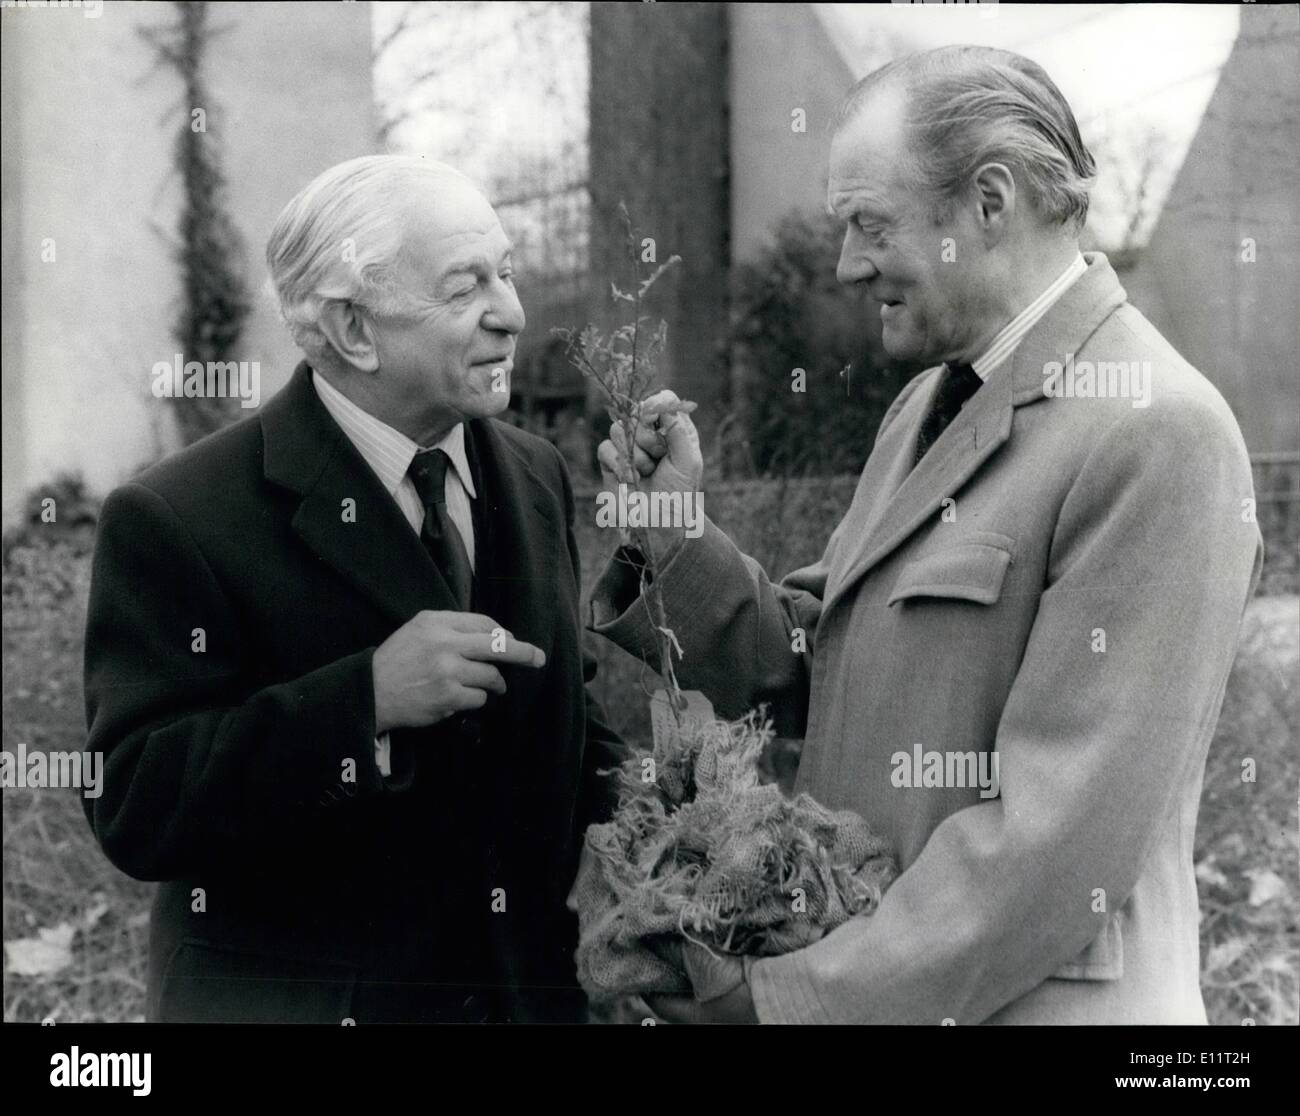 Feb. 02, 1980 - Duke Of Wellington Plants Turkey Oak At London Zoo: The 8th Duke of Wellington today presented a Stock Photo